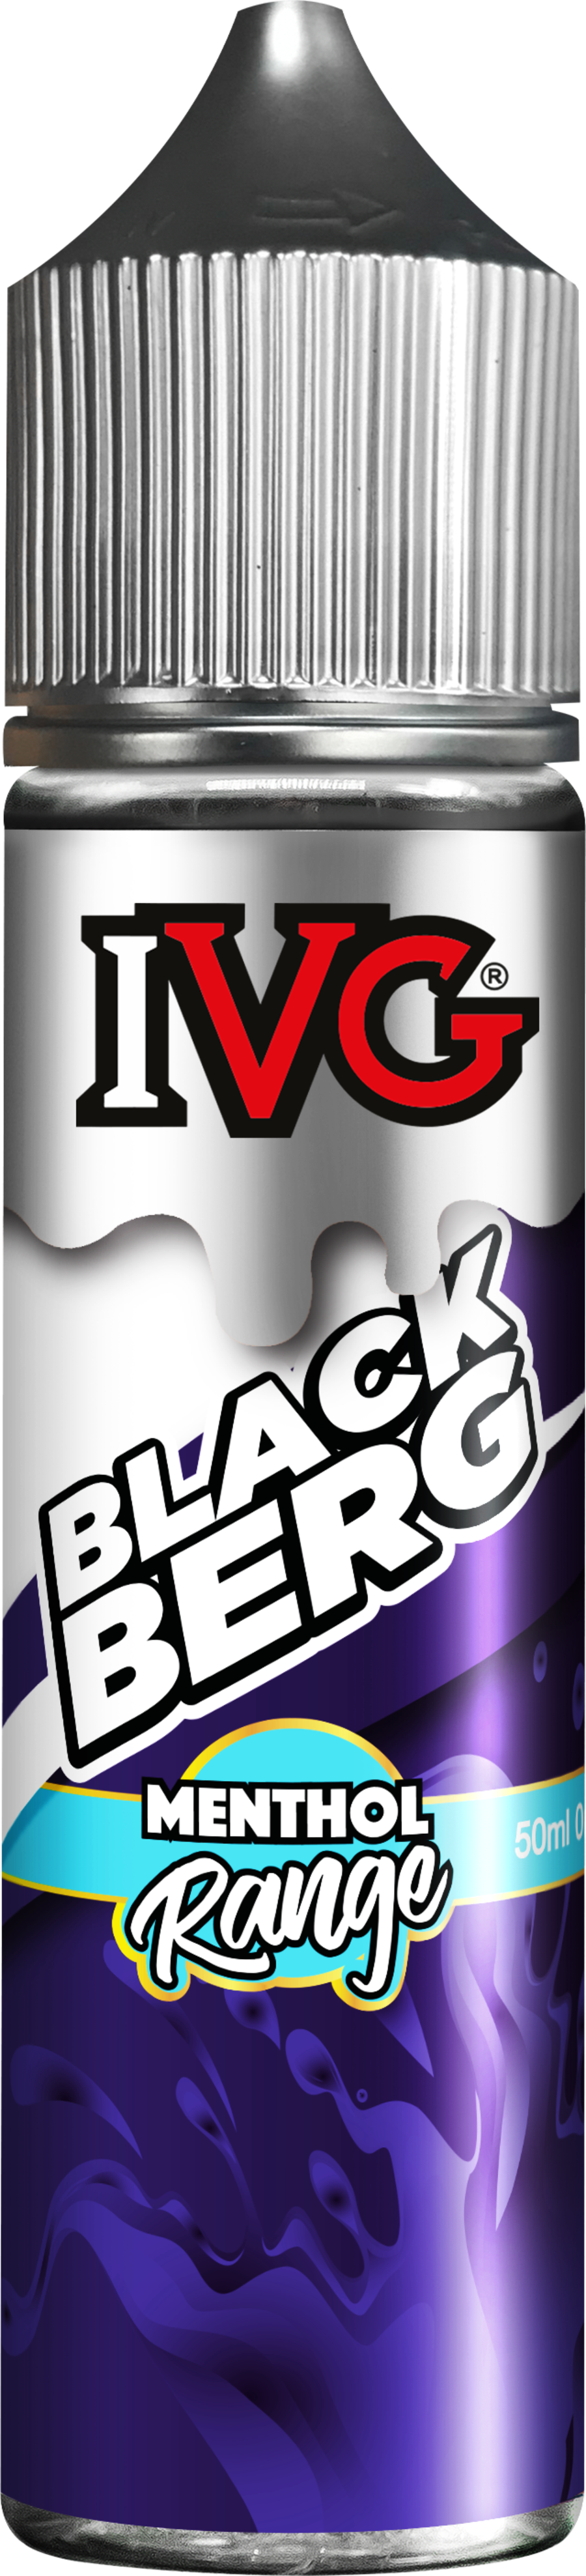 Black Berg By I VG MENTHOL 50ml